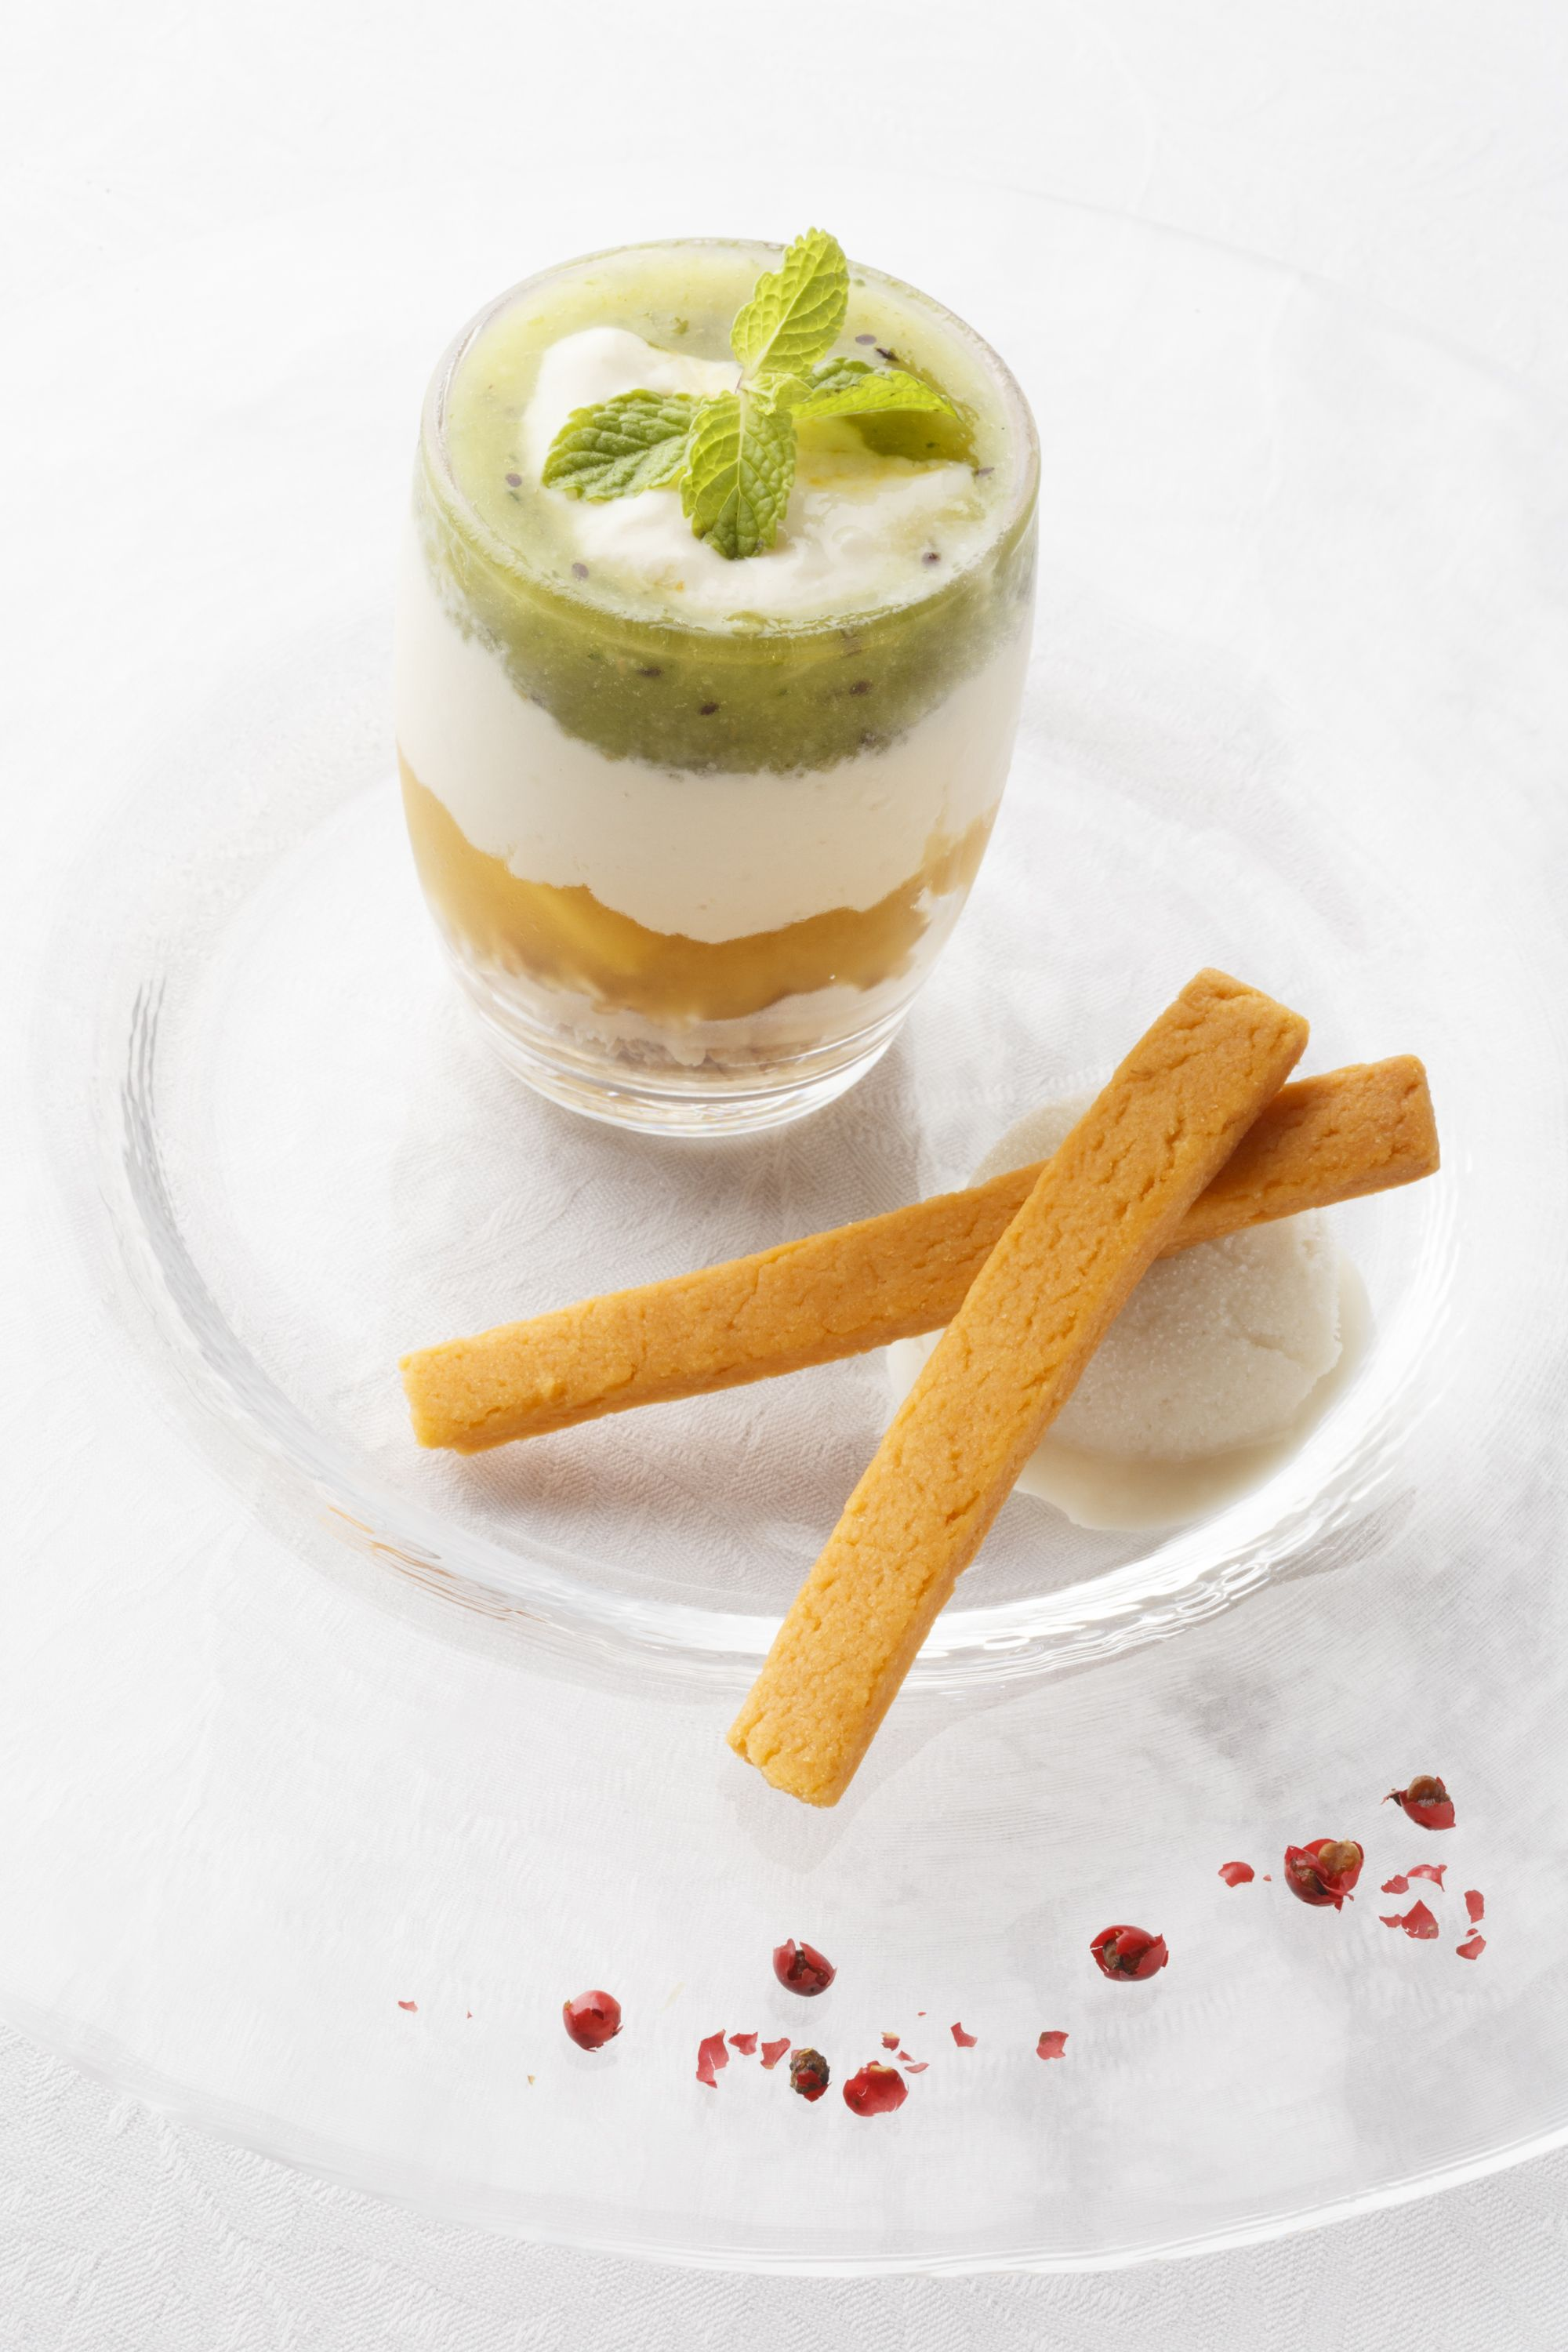 Vegetables and fruits parfait with special vege-cream like yogurt  http://g-veggie.com/gandv/